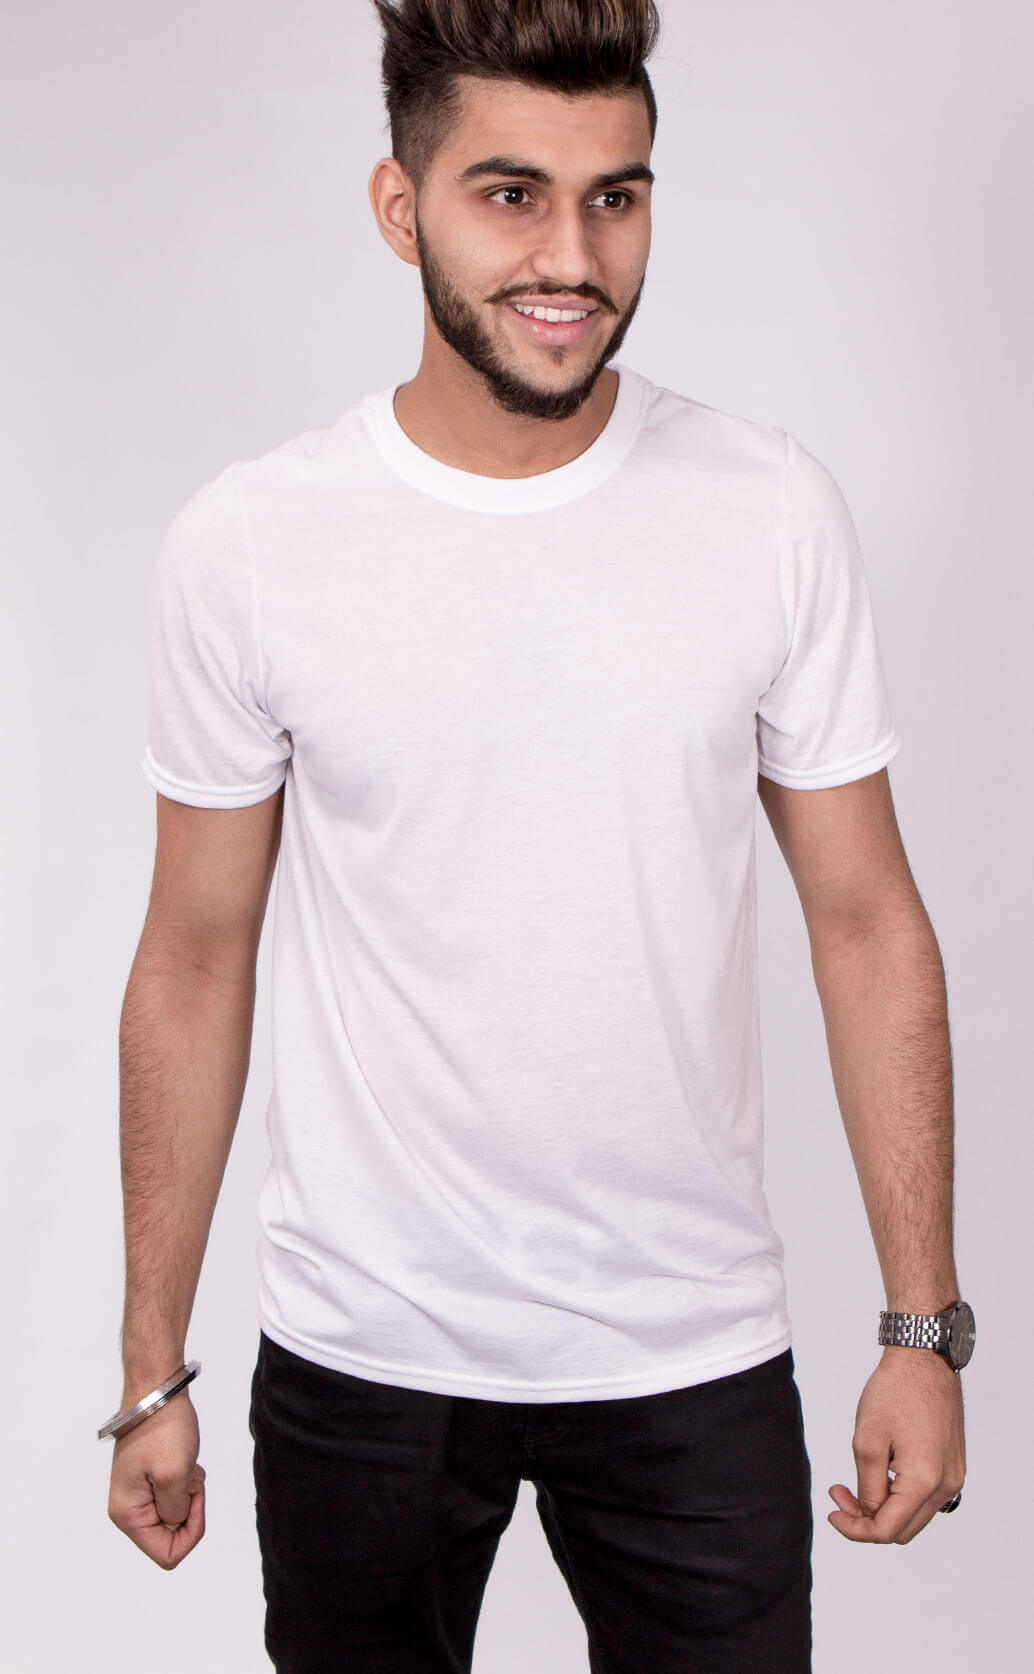 Size guide image for Mens Sub shirt type. Model is dressed in white t shirt and black trousers